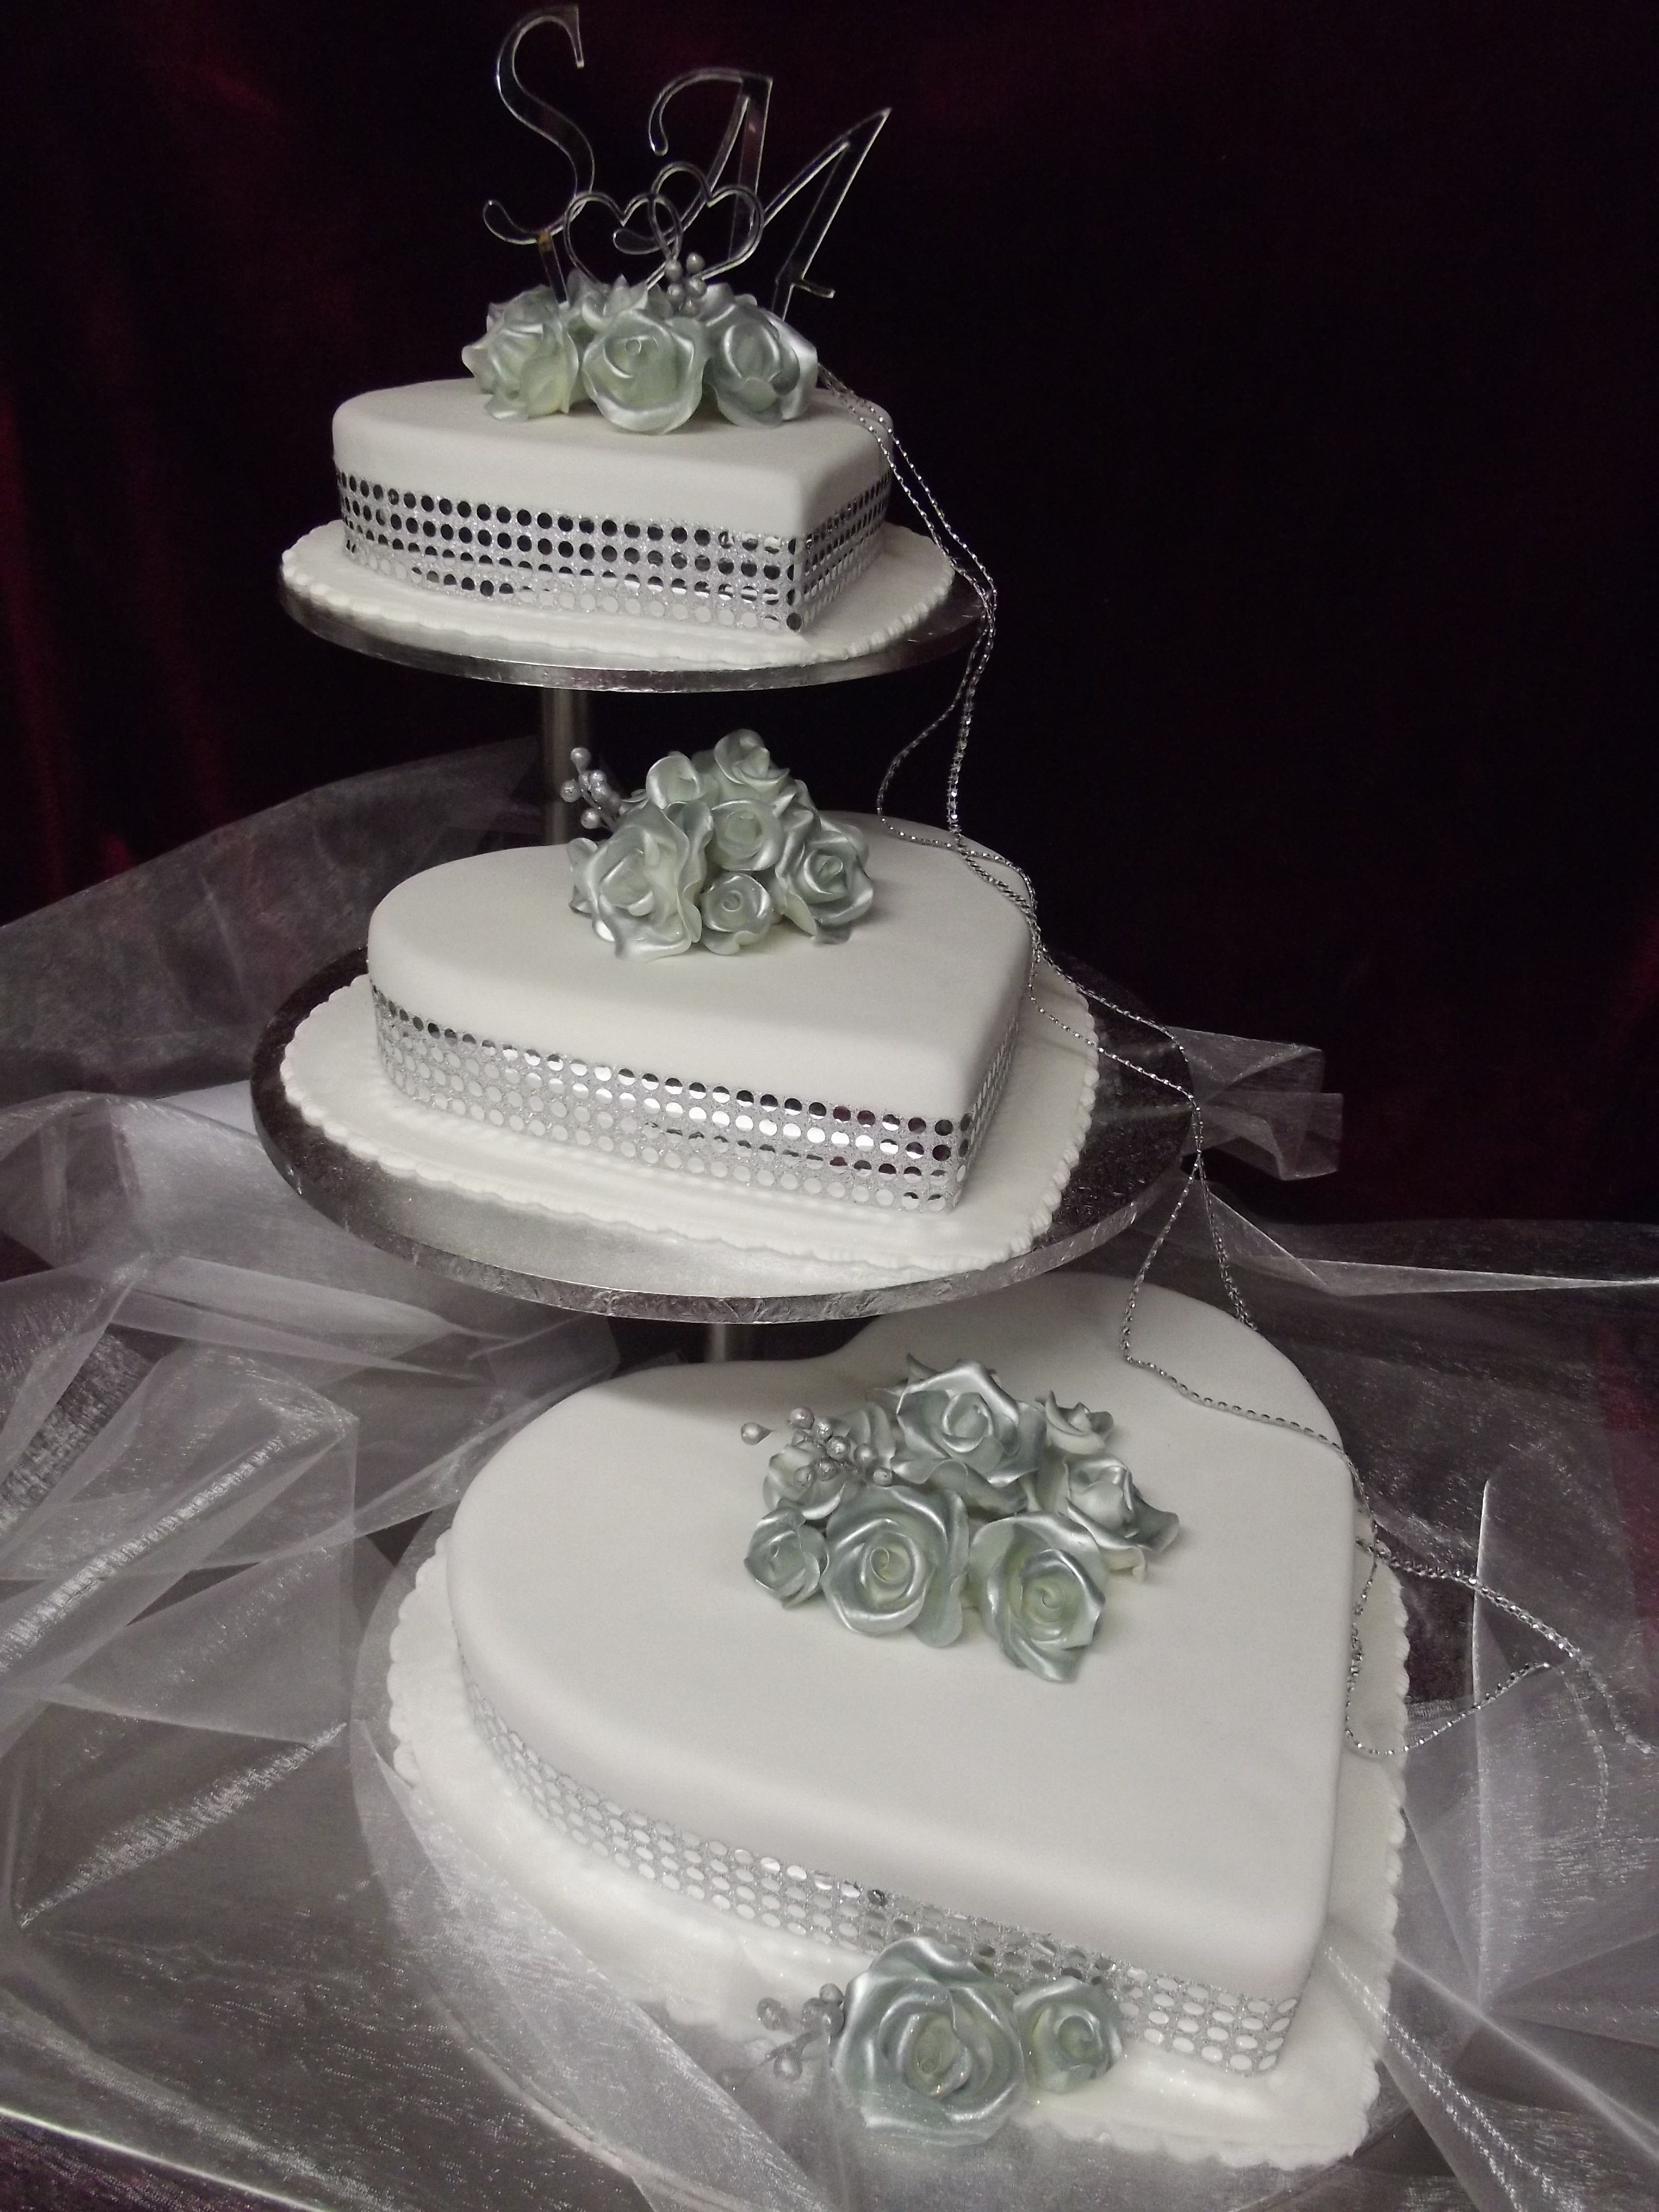 Floating Cake Stand Wedding Cakes : floating, stand, wedding, cakes, Website:, Www.frescofoods.co.nz, Heart, Shaped, Silver, Roses, Floating, Stand., Price, Ra…, Wedding, Cakes,, Stands,